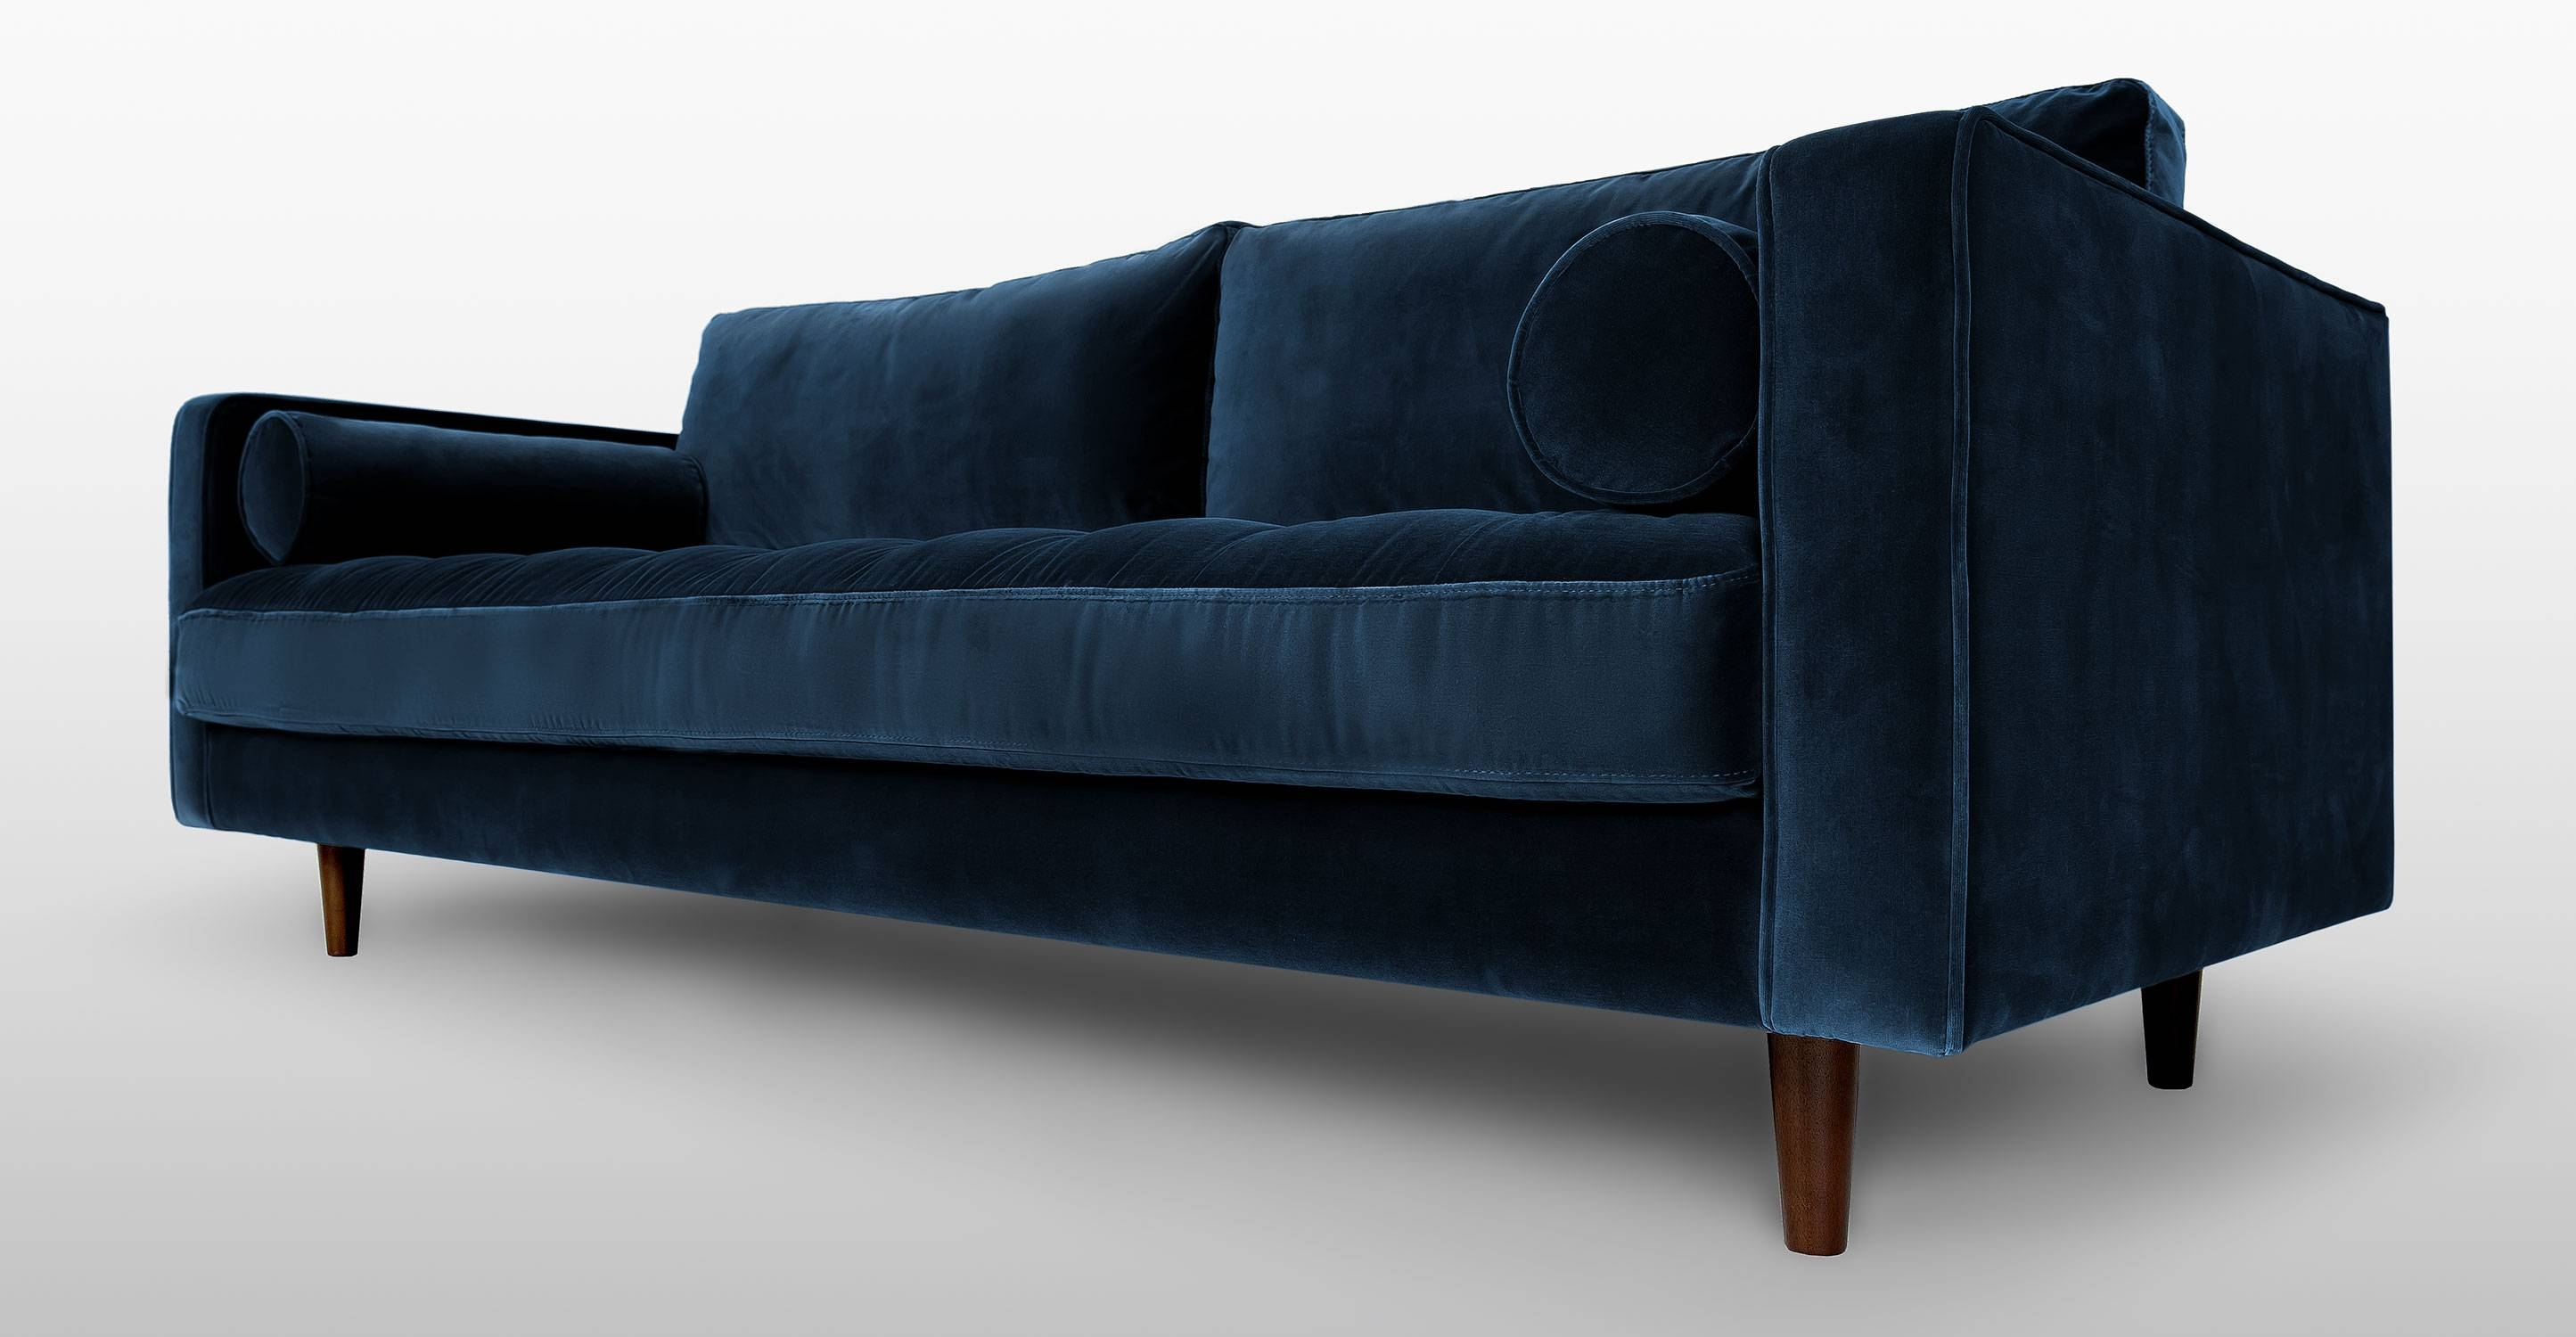 Midnight Blue Sofa 15 With Midnight Blue Sofa | Jinanhongyu inside Midnight Blue Sofas (Image 8 of 15)